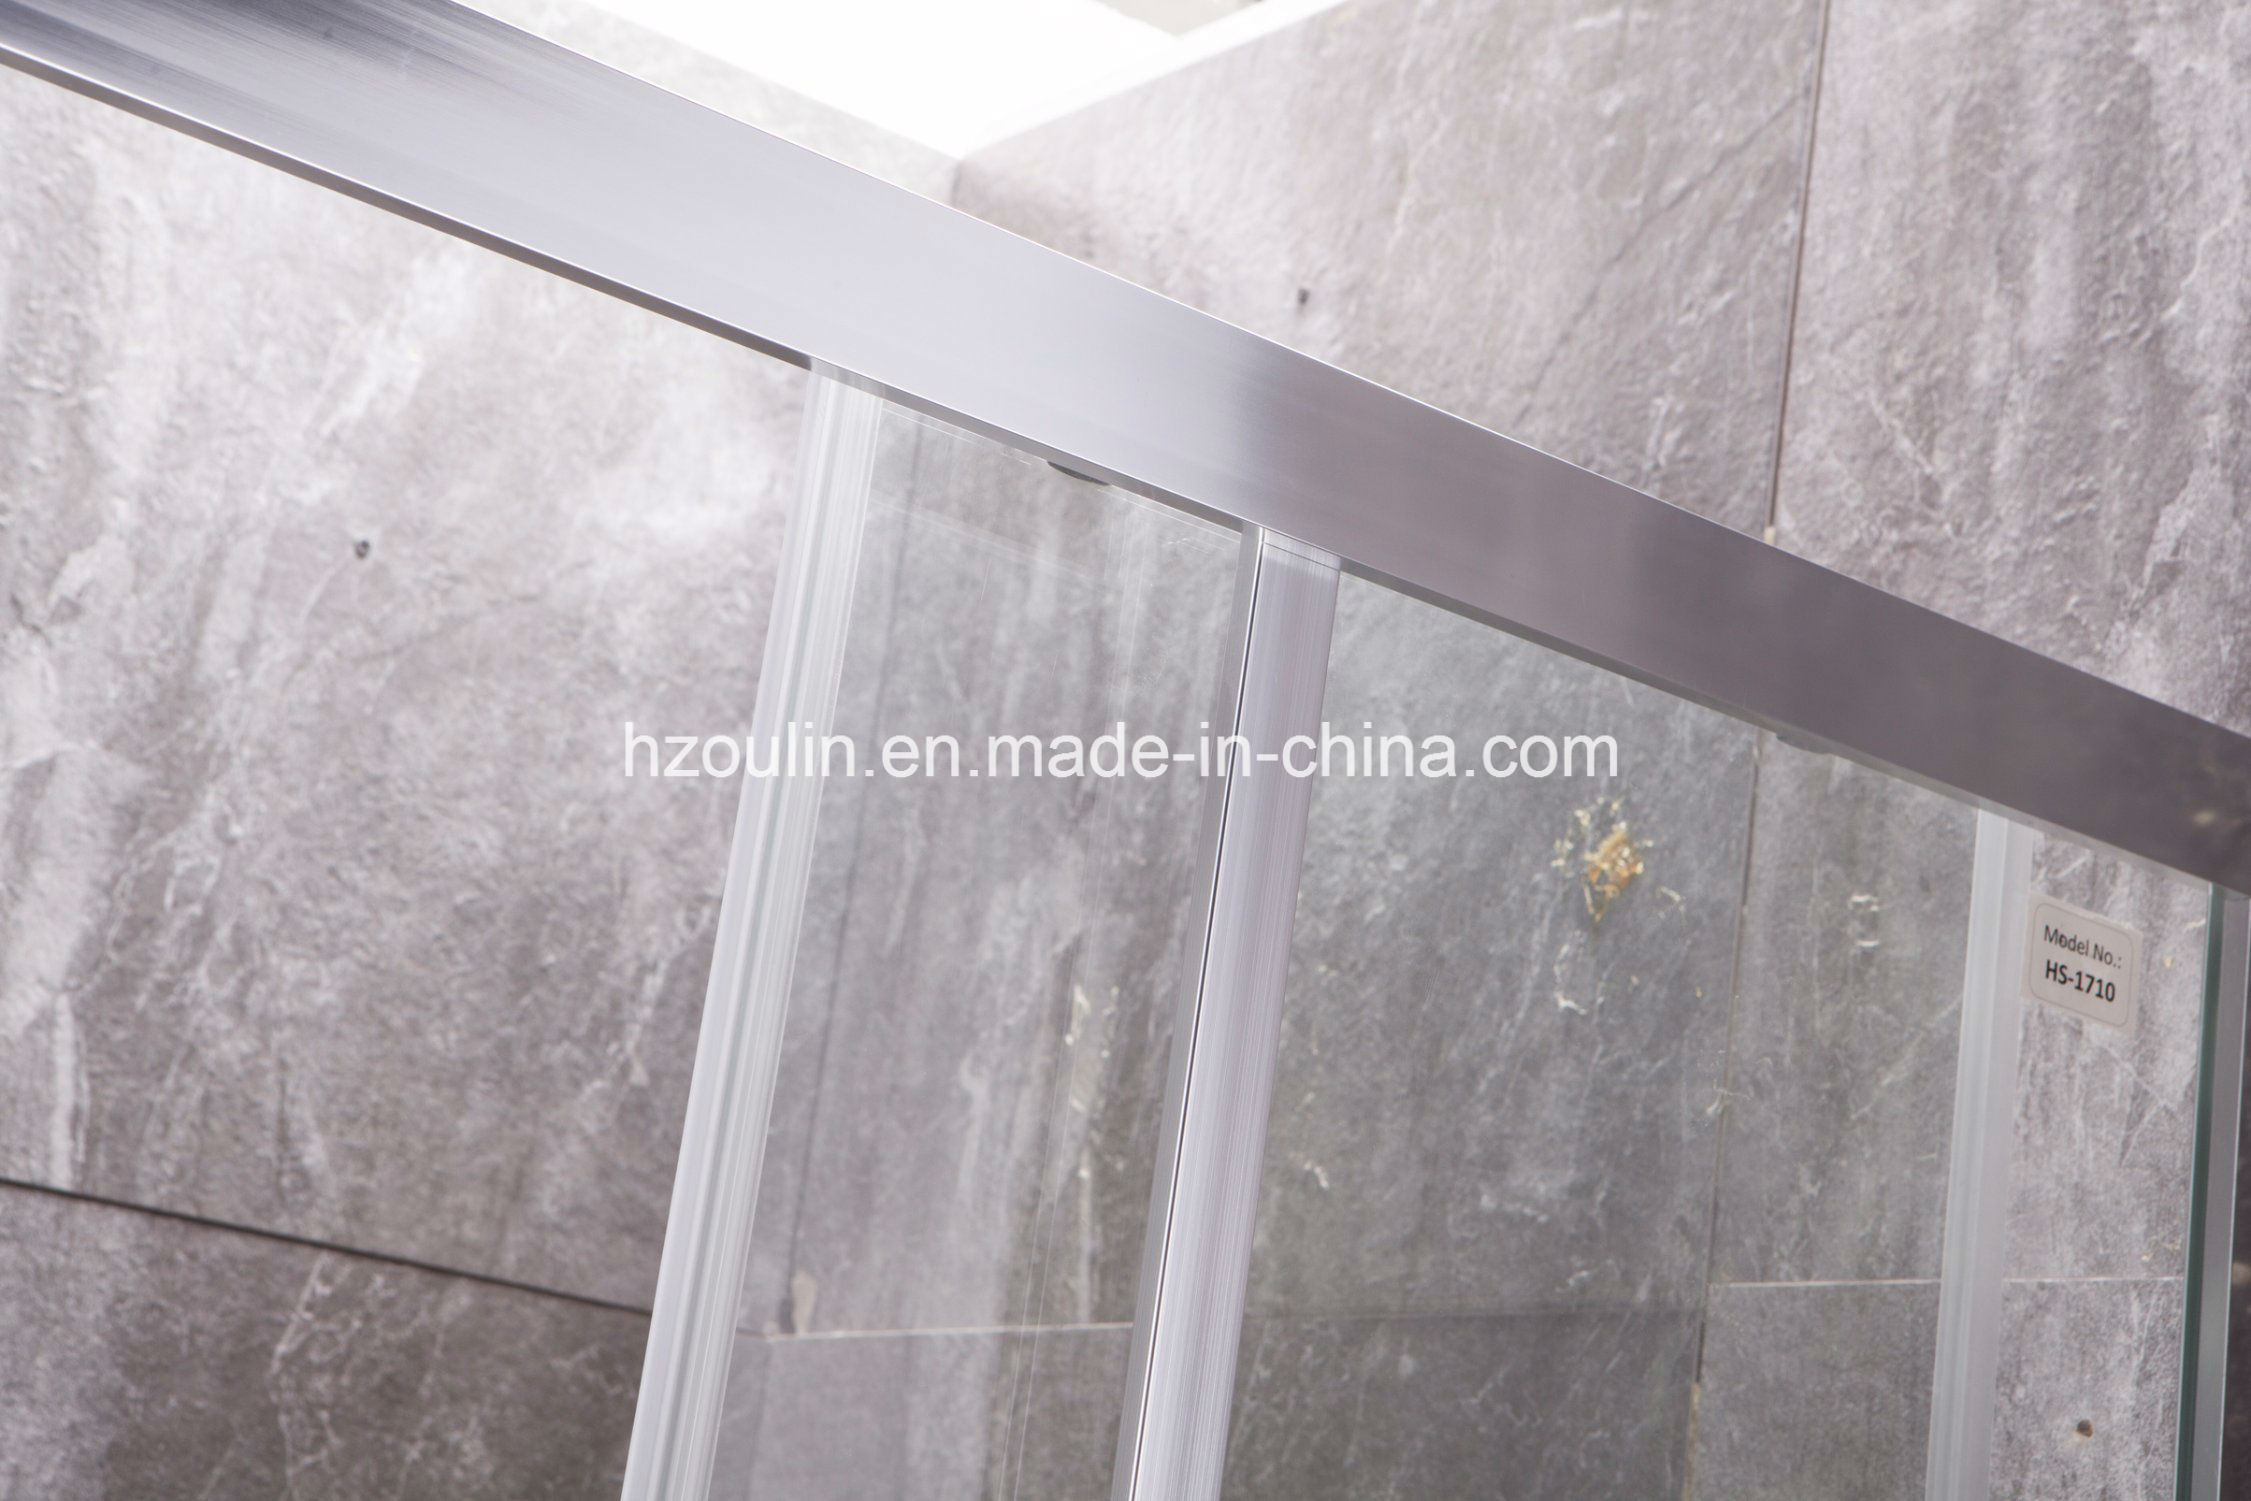 China Square Shower Cubicle Photos & Pictures - Made-in-china.com